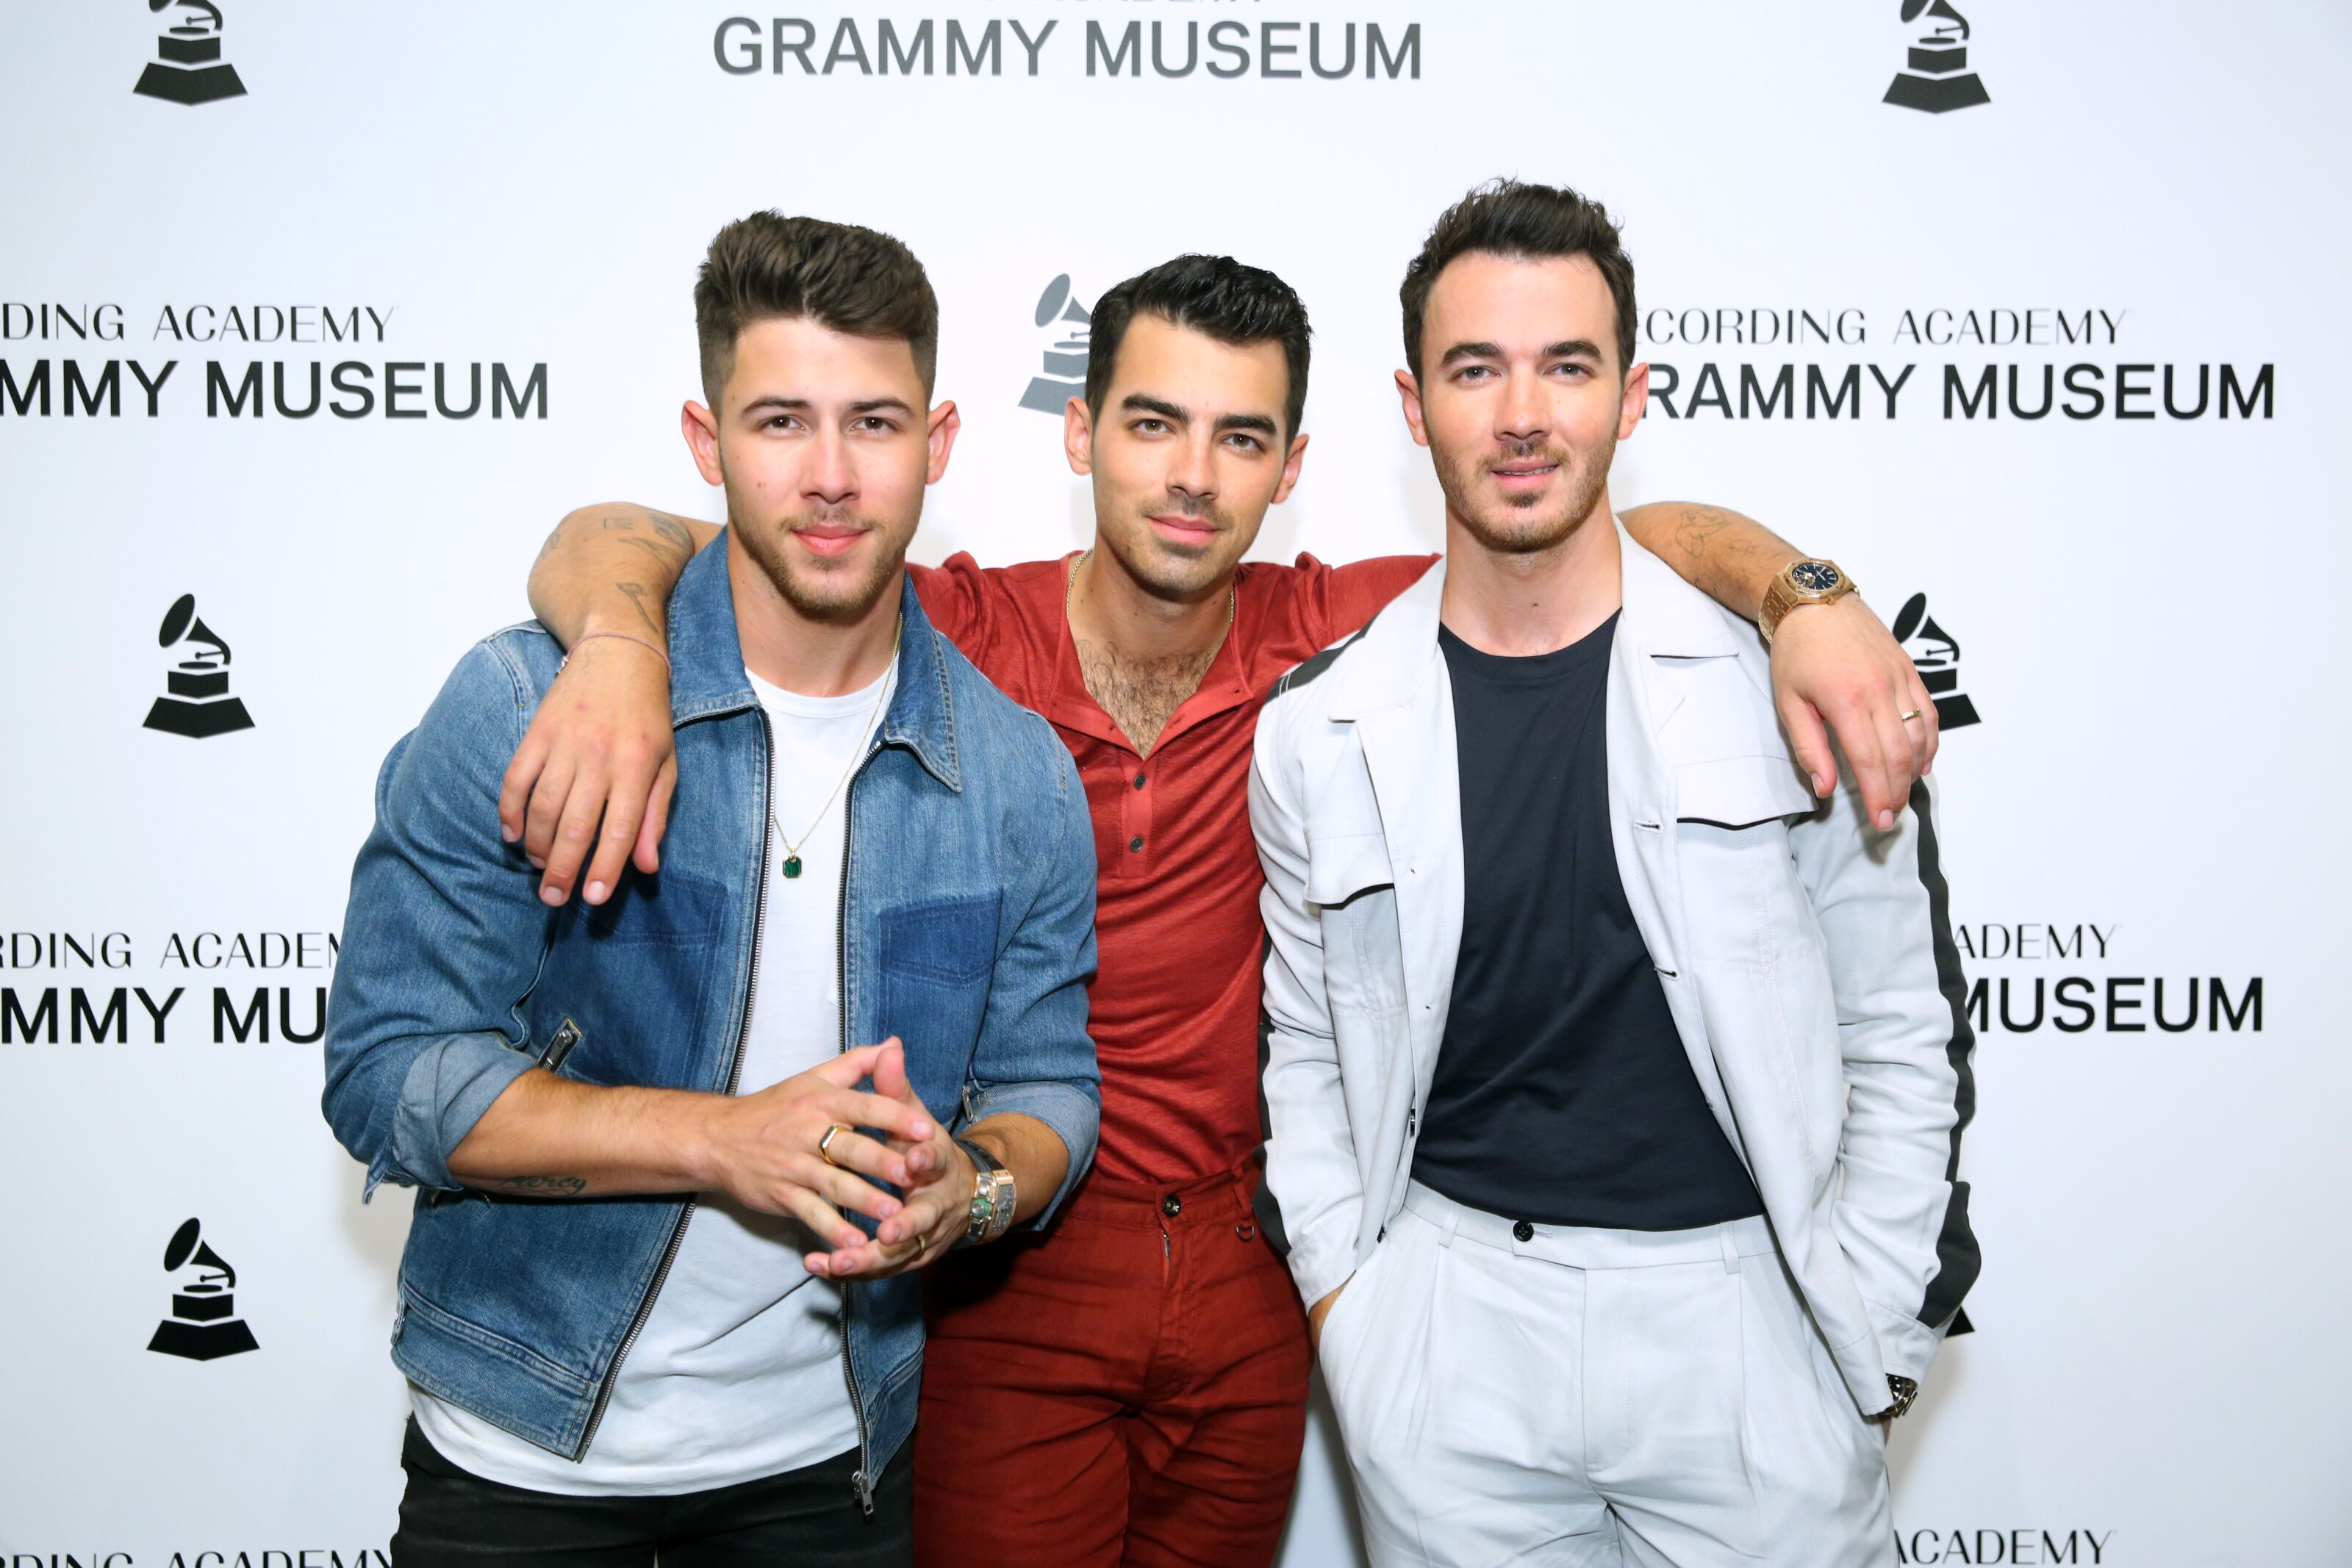 Disney+: What Jonas Brothers content will be on the streaming service?